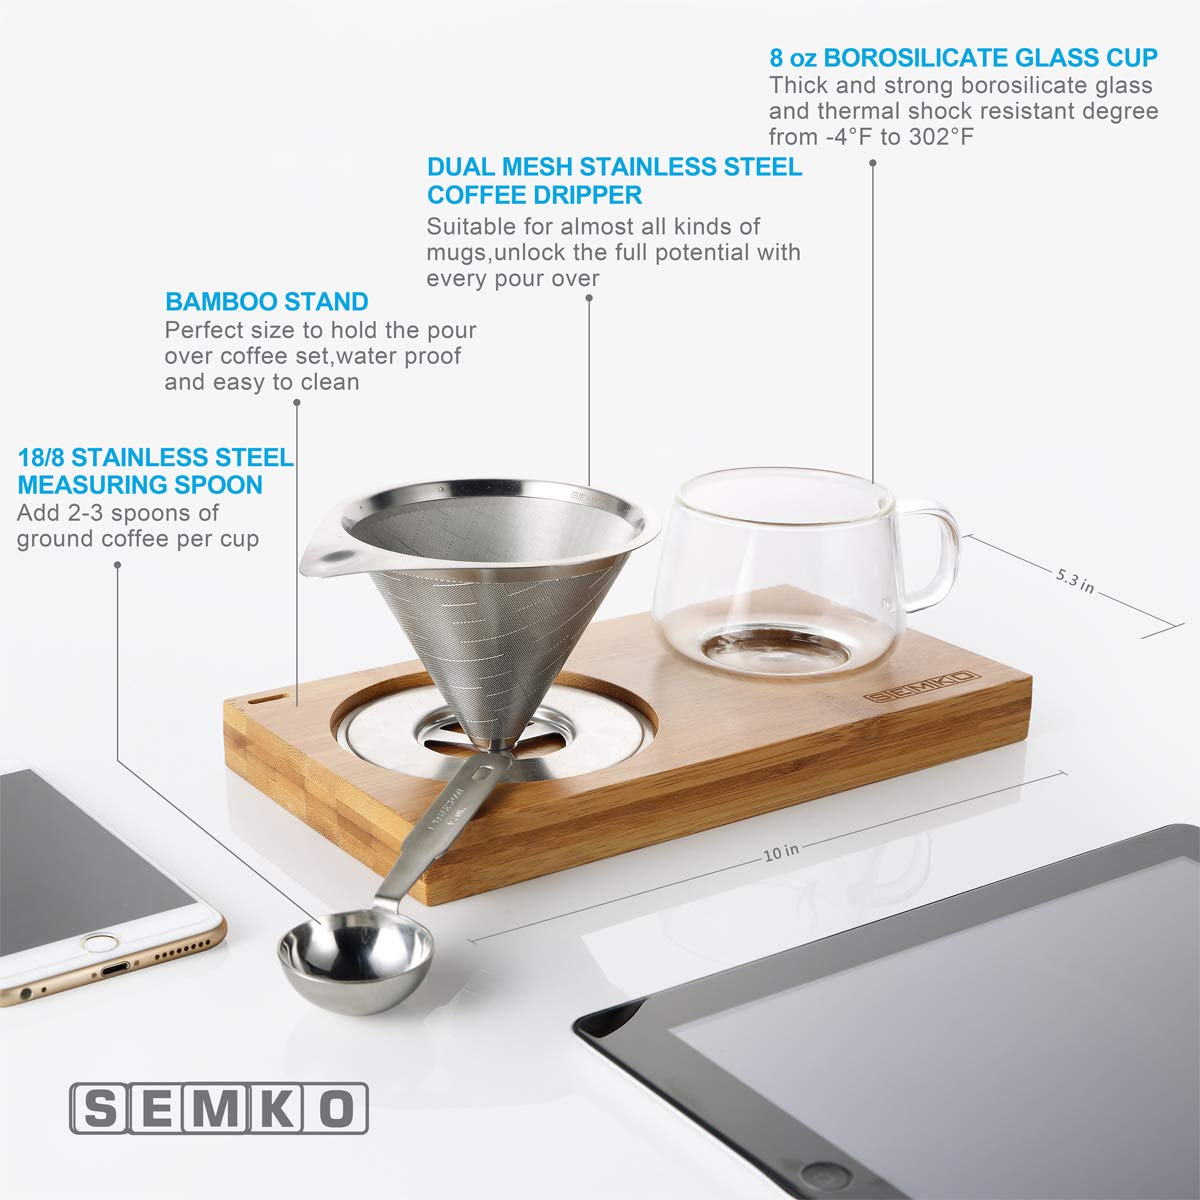 4 pcs/set, Single Serve Coffee Maker, Stainless Steel Coffee Dripper, Pour Over Coffee Maker, One Cup Coffee Maker Set, 8 oz Coffee Cup, Convenient Compact Dishwasher Safe Paperless Gift-ready Package by SEMKO (Image #5)